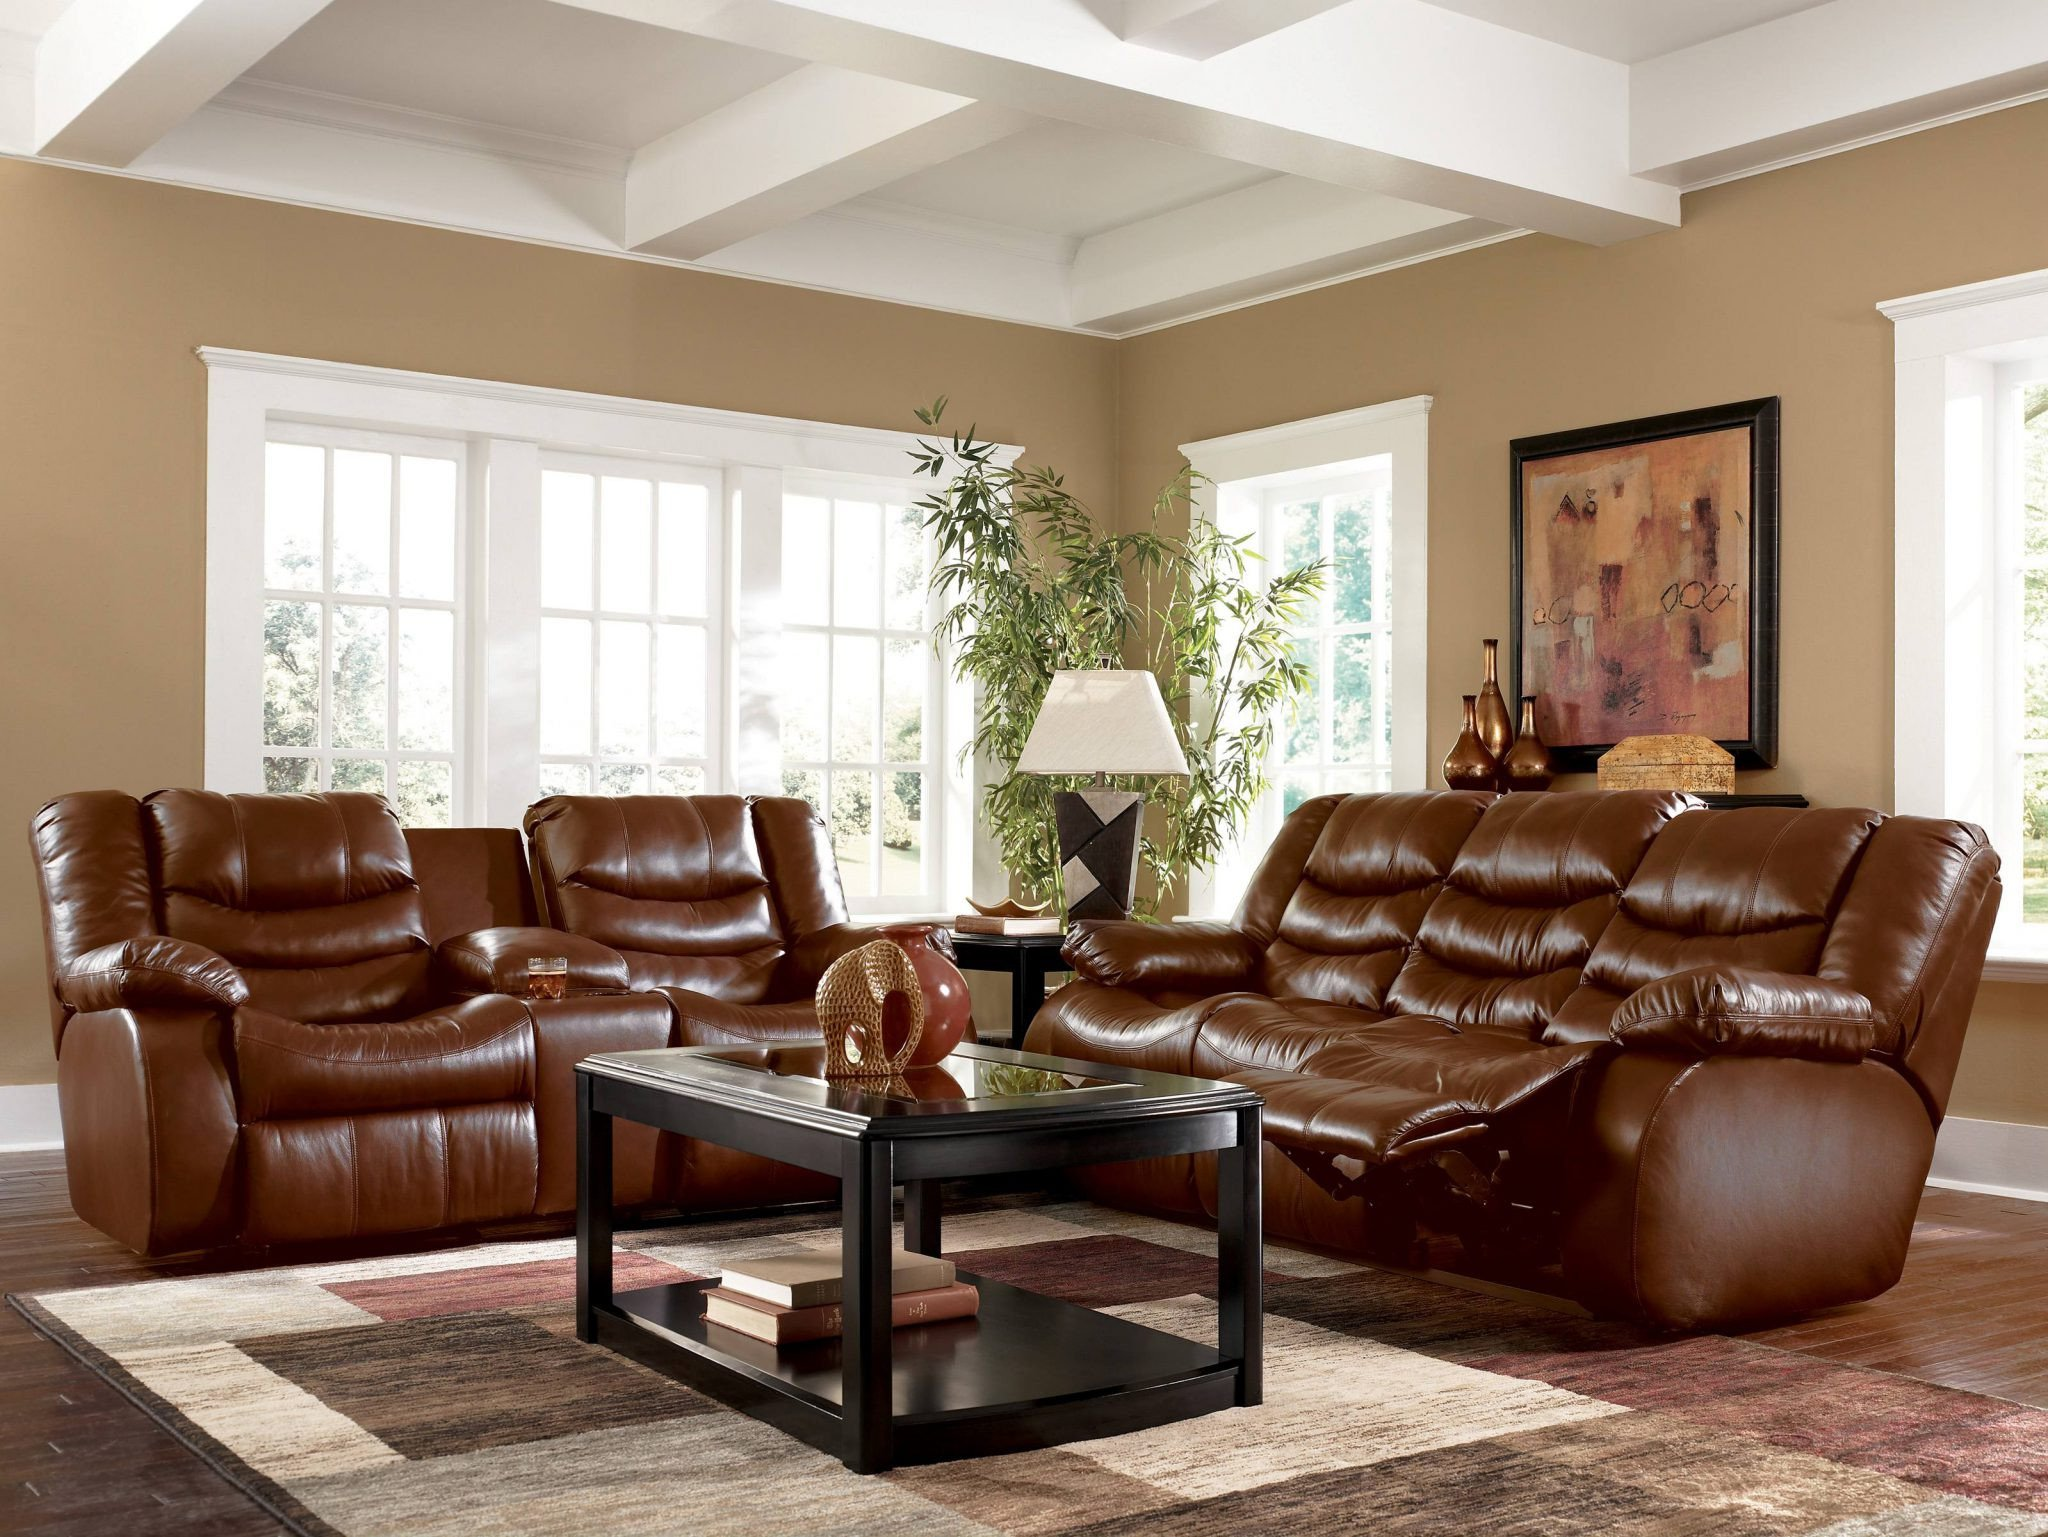 Brown Living Room Decorating Ideas New Living Room Ideas with Brown sofas theydesign theydesign